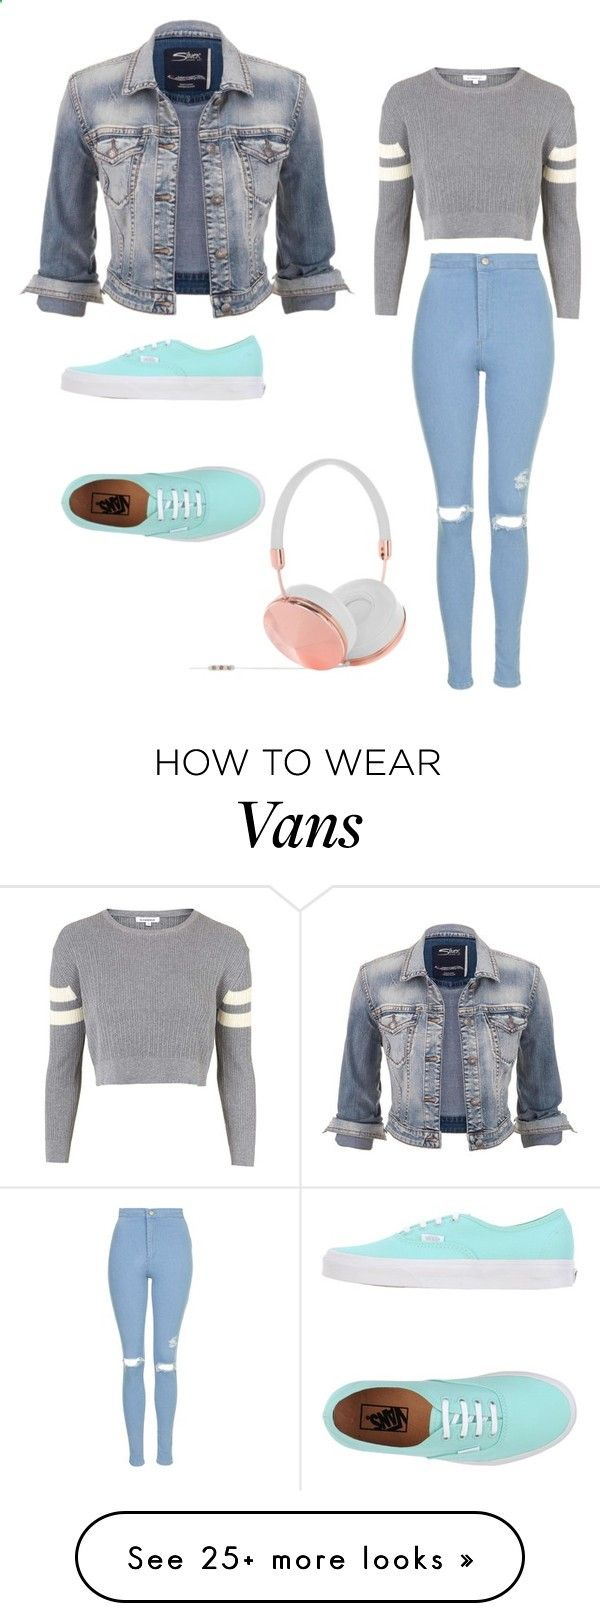 Untitled #106 by dem123 on Polyvore featuring Frends, Vans, maurices, Topshop, women's clothing, women's fashion, women, female, woman and misses